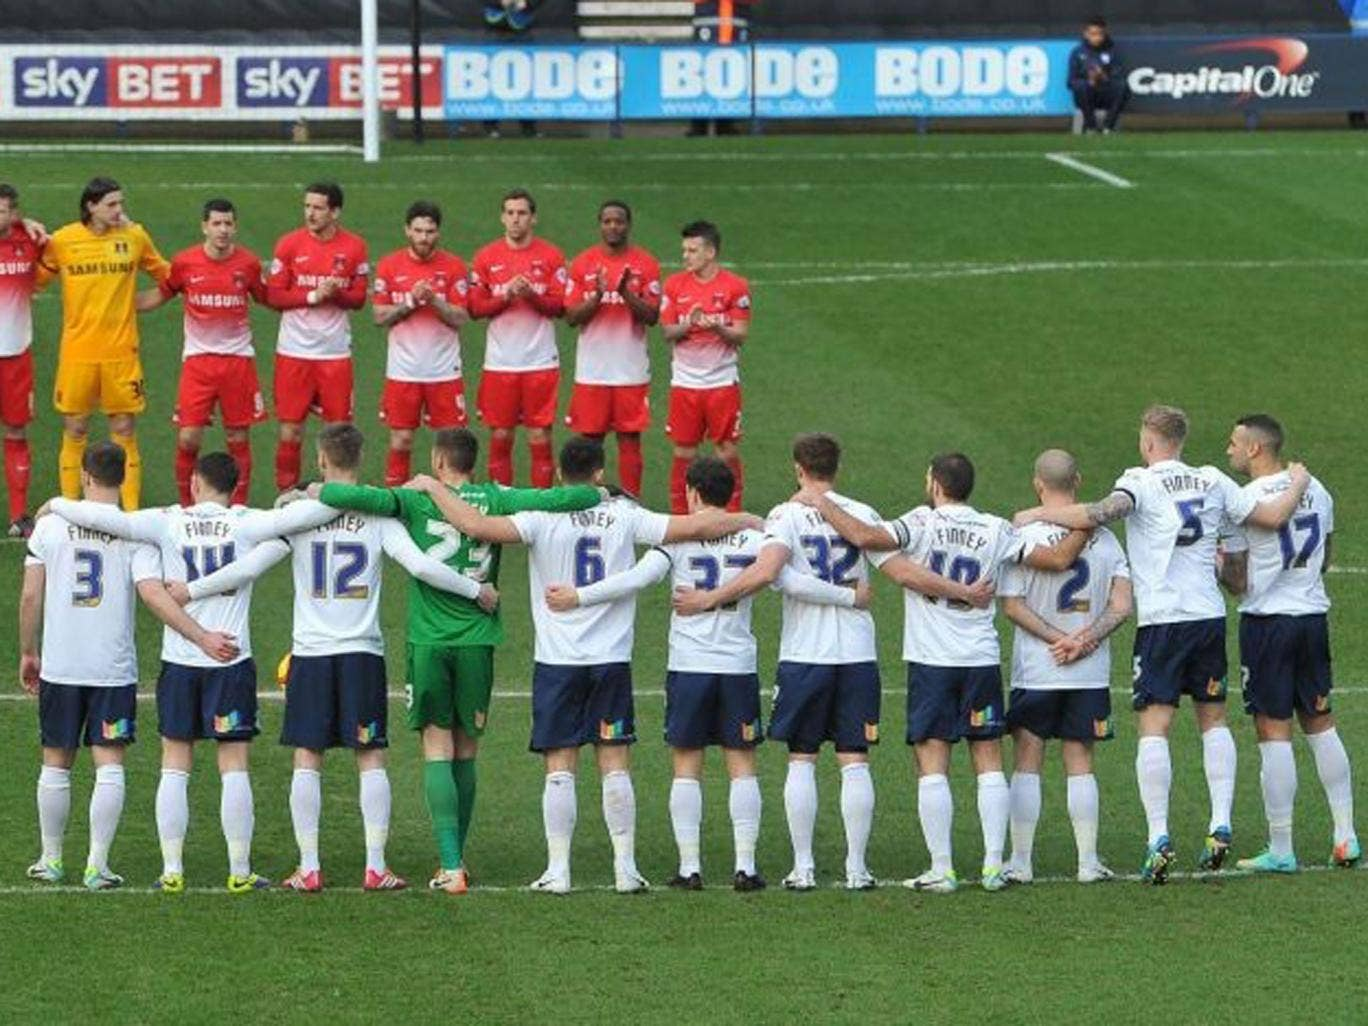 North End players in a  pre-match tribute, all sporting 'Finney' shirts